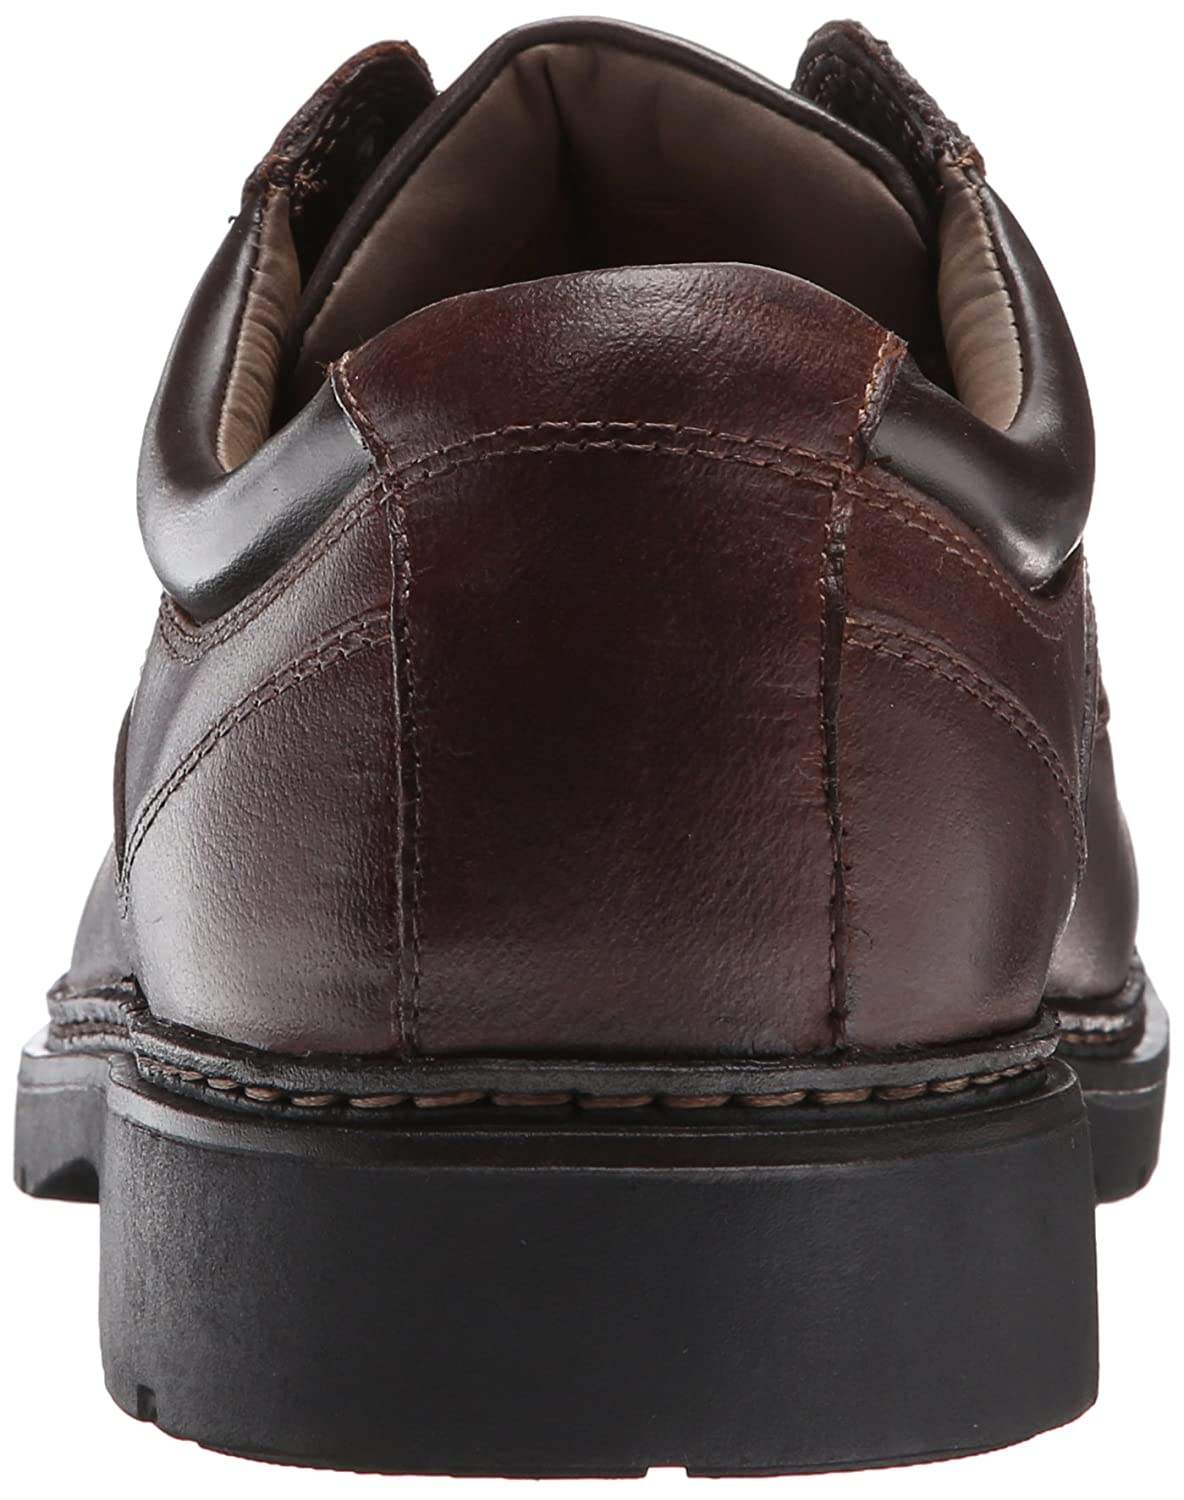 Dockers Men's Kenworth Kenworth Men's Oxford, Cognac, 13 M US 9d59f6